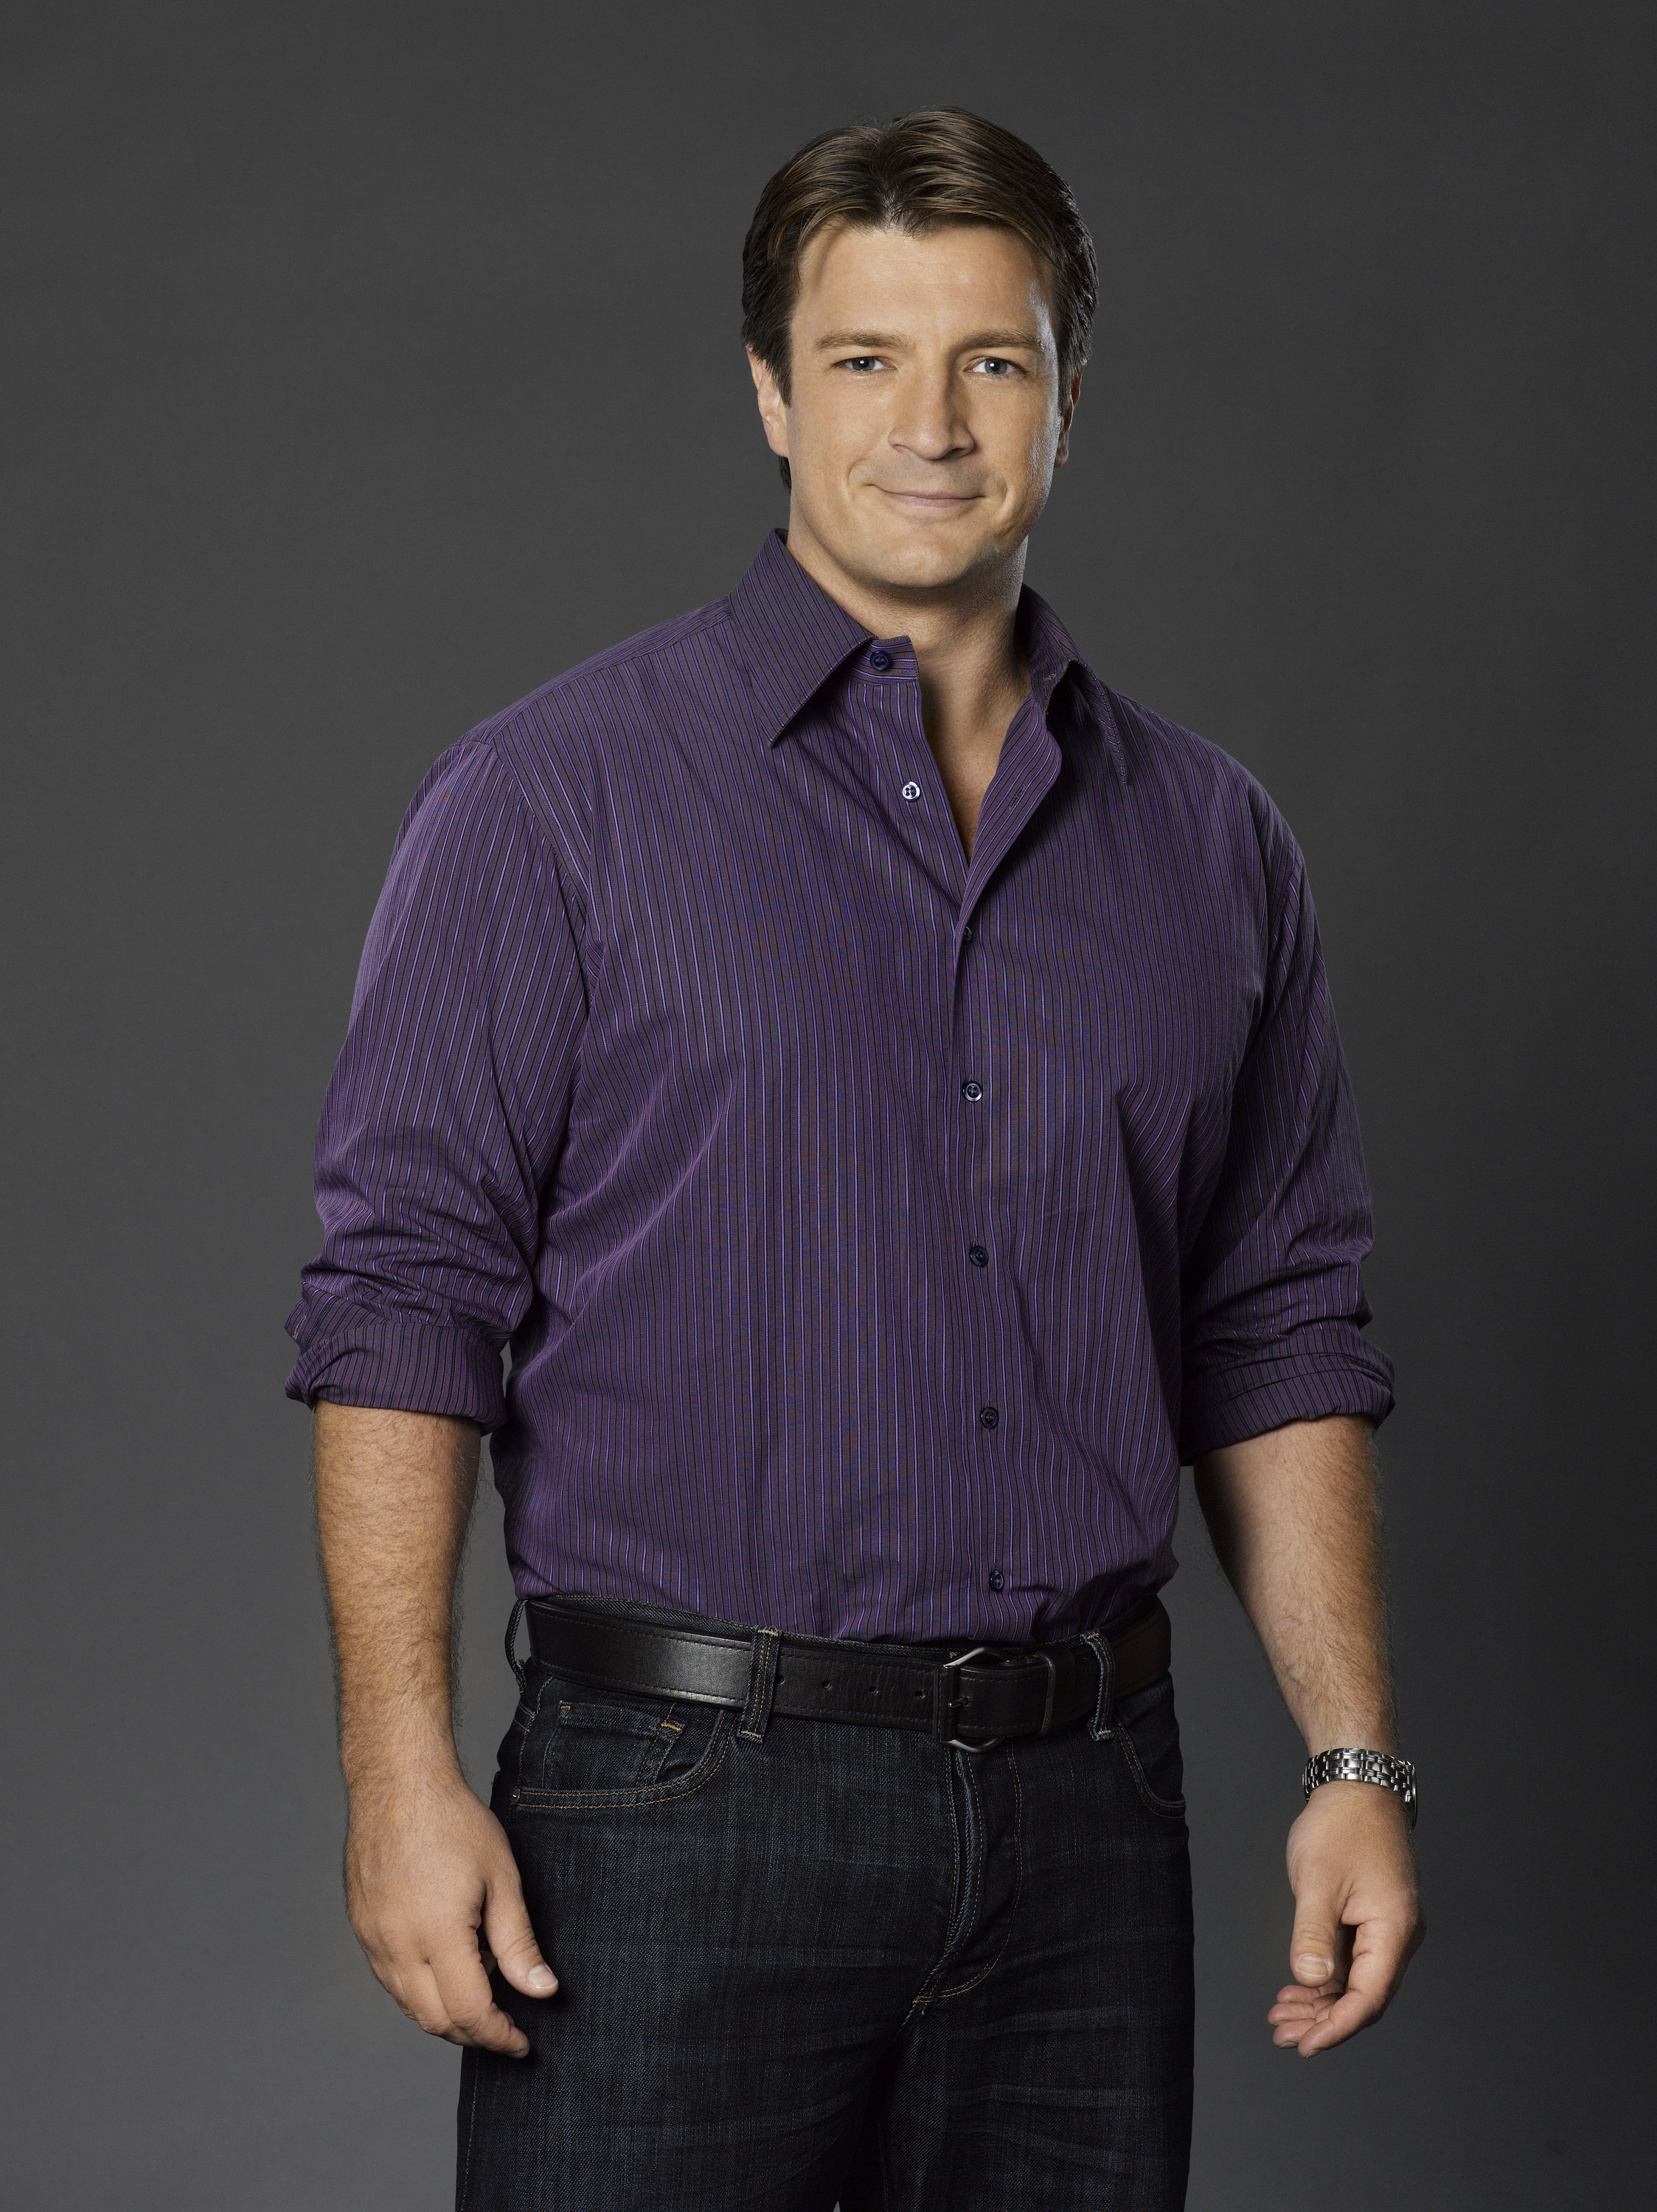 nathan fillion cablenathan fillion gif, nathan fillion twitter, nathan fillion gif nevermind, nathan fillion 2017, nathan fillion young, nathan fillion firefly, nathan fillion 2016, nathan fillion nevermind, nathan fillion castle, nathan fillion wonder man, nathan fillion cable, nathan fillion interview, nathan fillion booster gold, nathan fillion guardians of the galaxy cameo, nathan fillion gif tumblr, nathan fillion galaxy guardians, nathan fillion forum, nathan fillion quotes, nathan fillion new show, nathan fillion buck